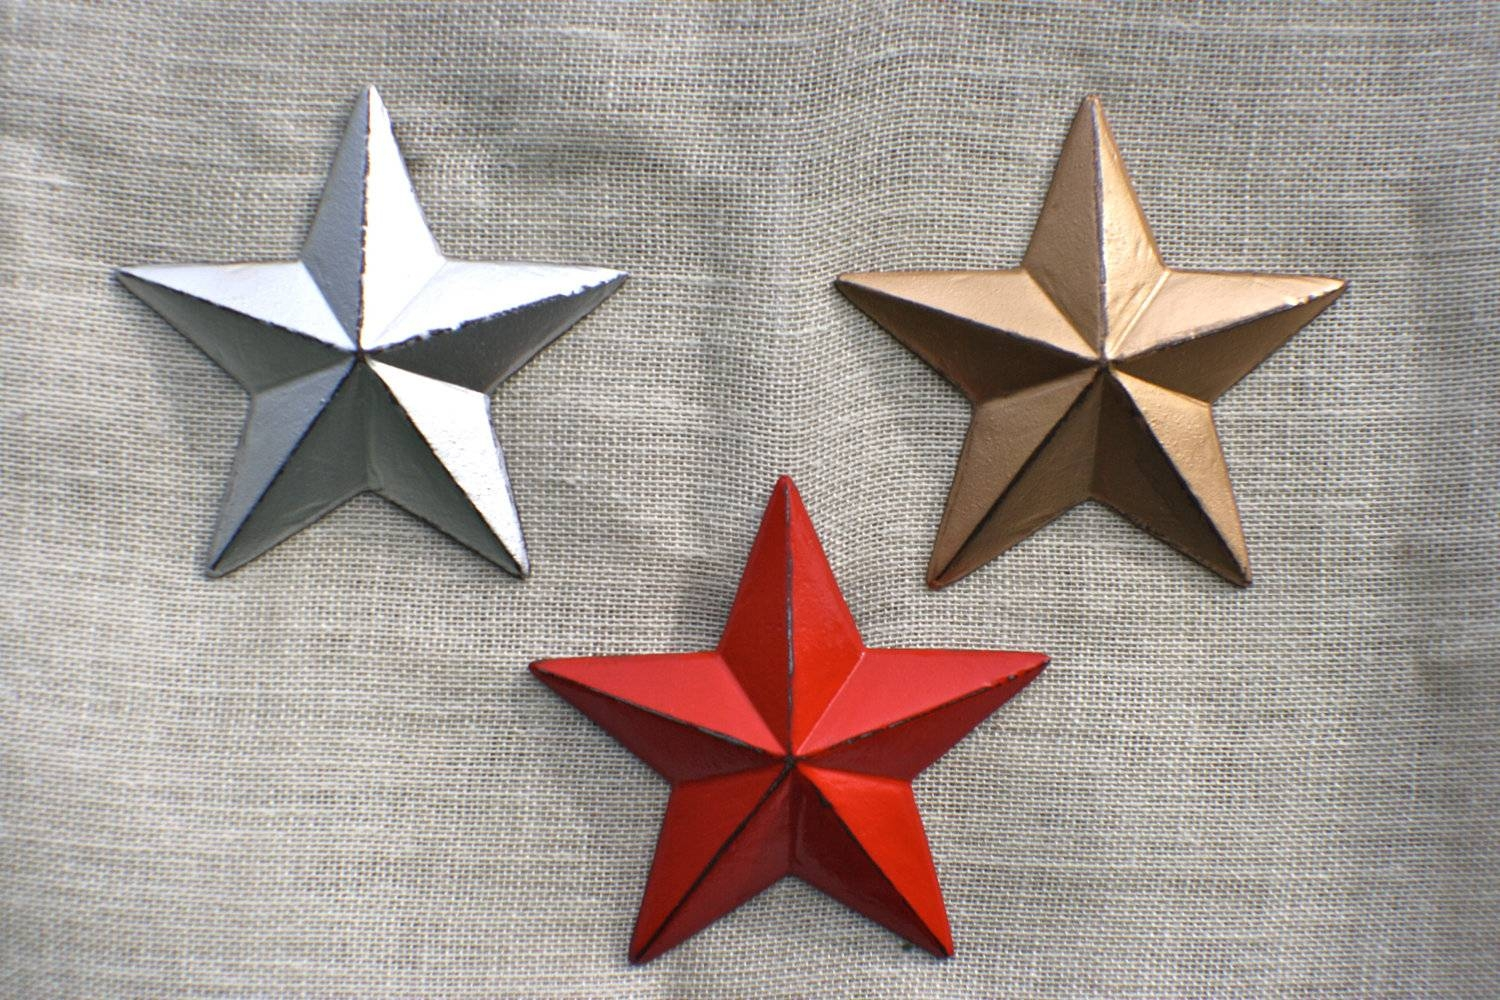 Texas Star Wall Decor | Home Decor And Design Pertaining To Latest Texas Star Metal Wall Art (View 6 of 20)